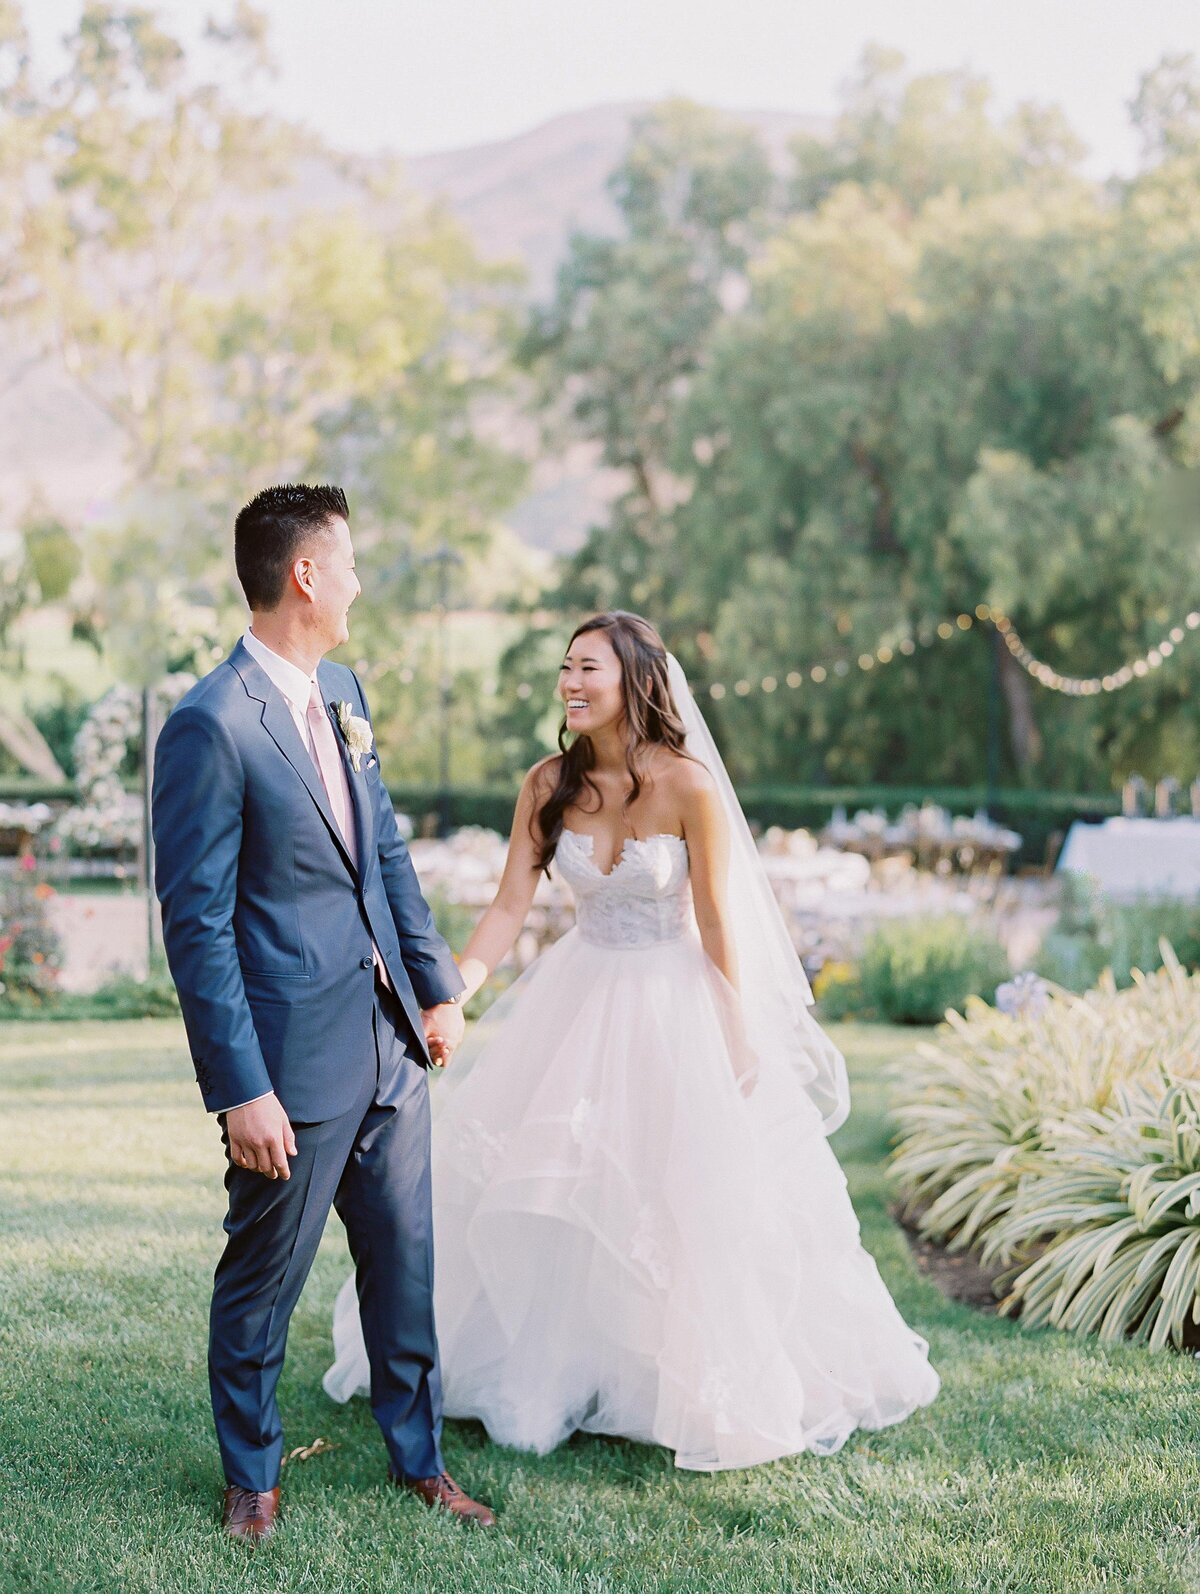 Dani Toscano Photography — Maravilla Gardens Wedding-35